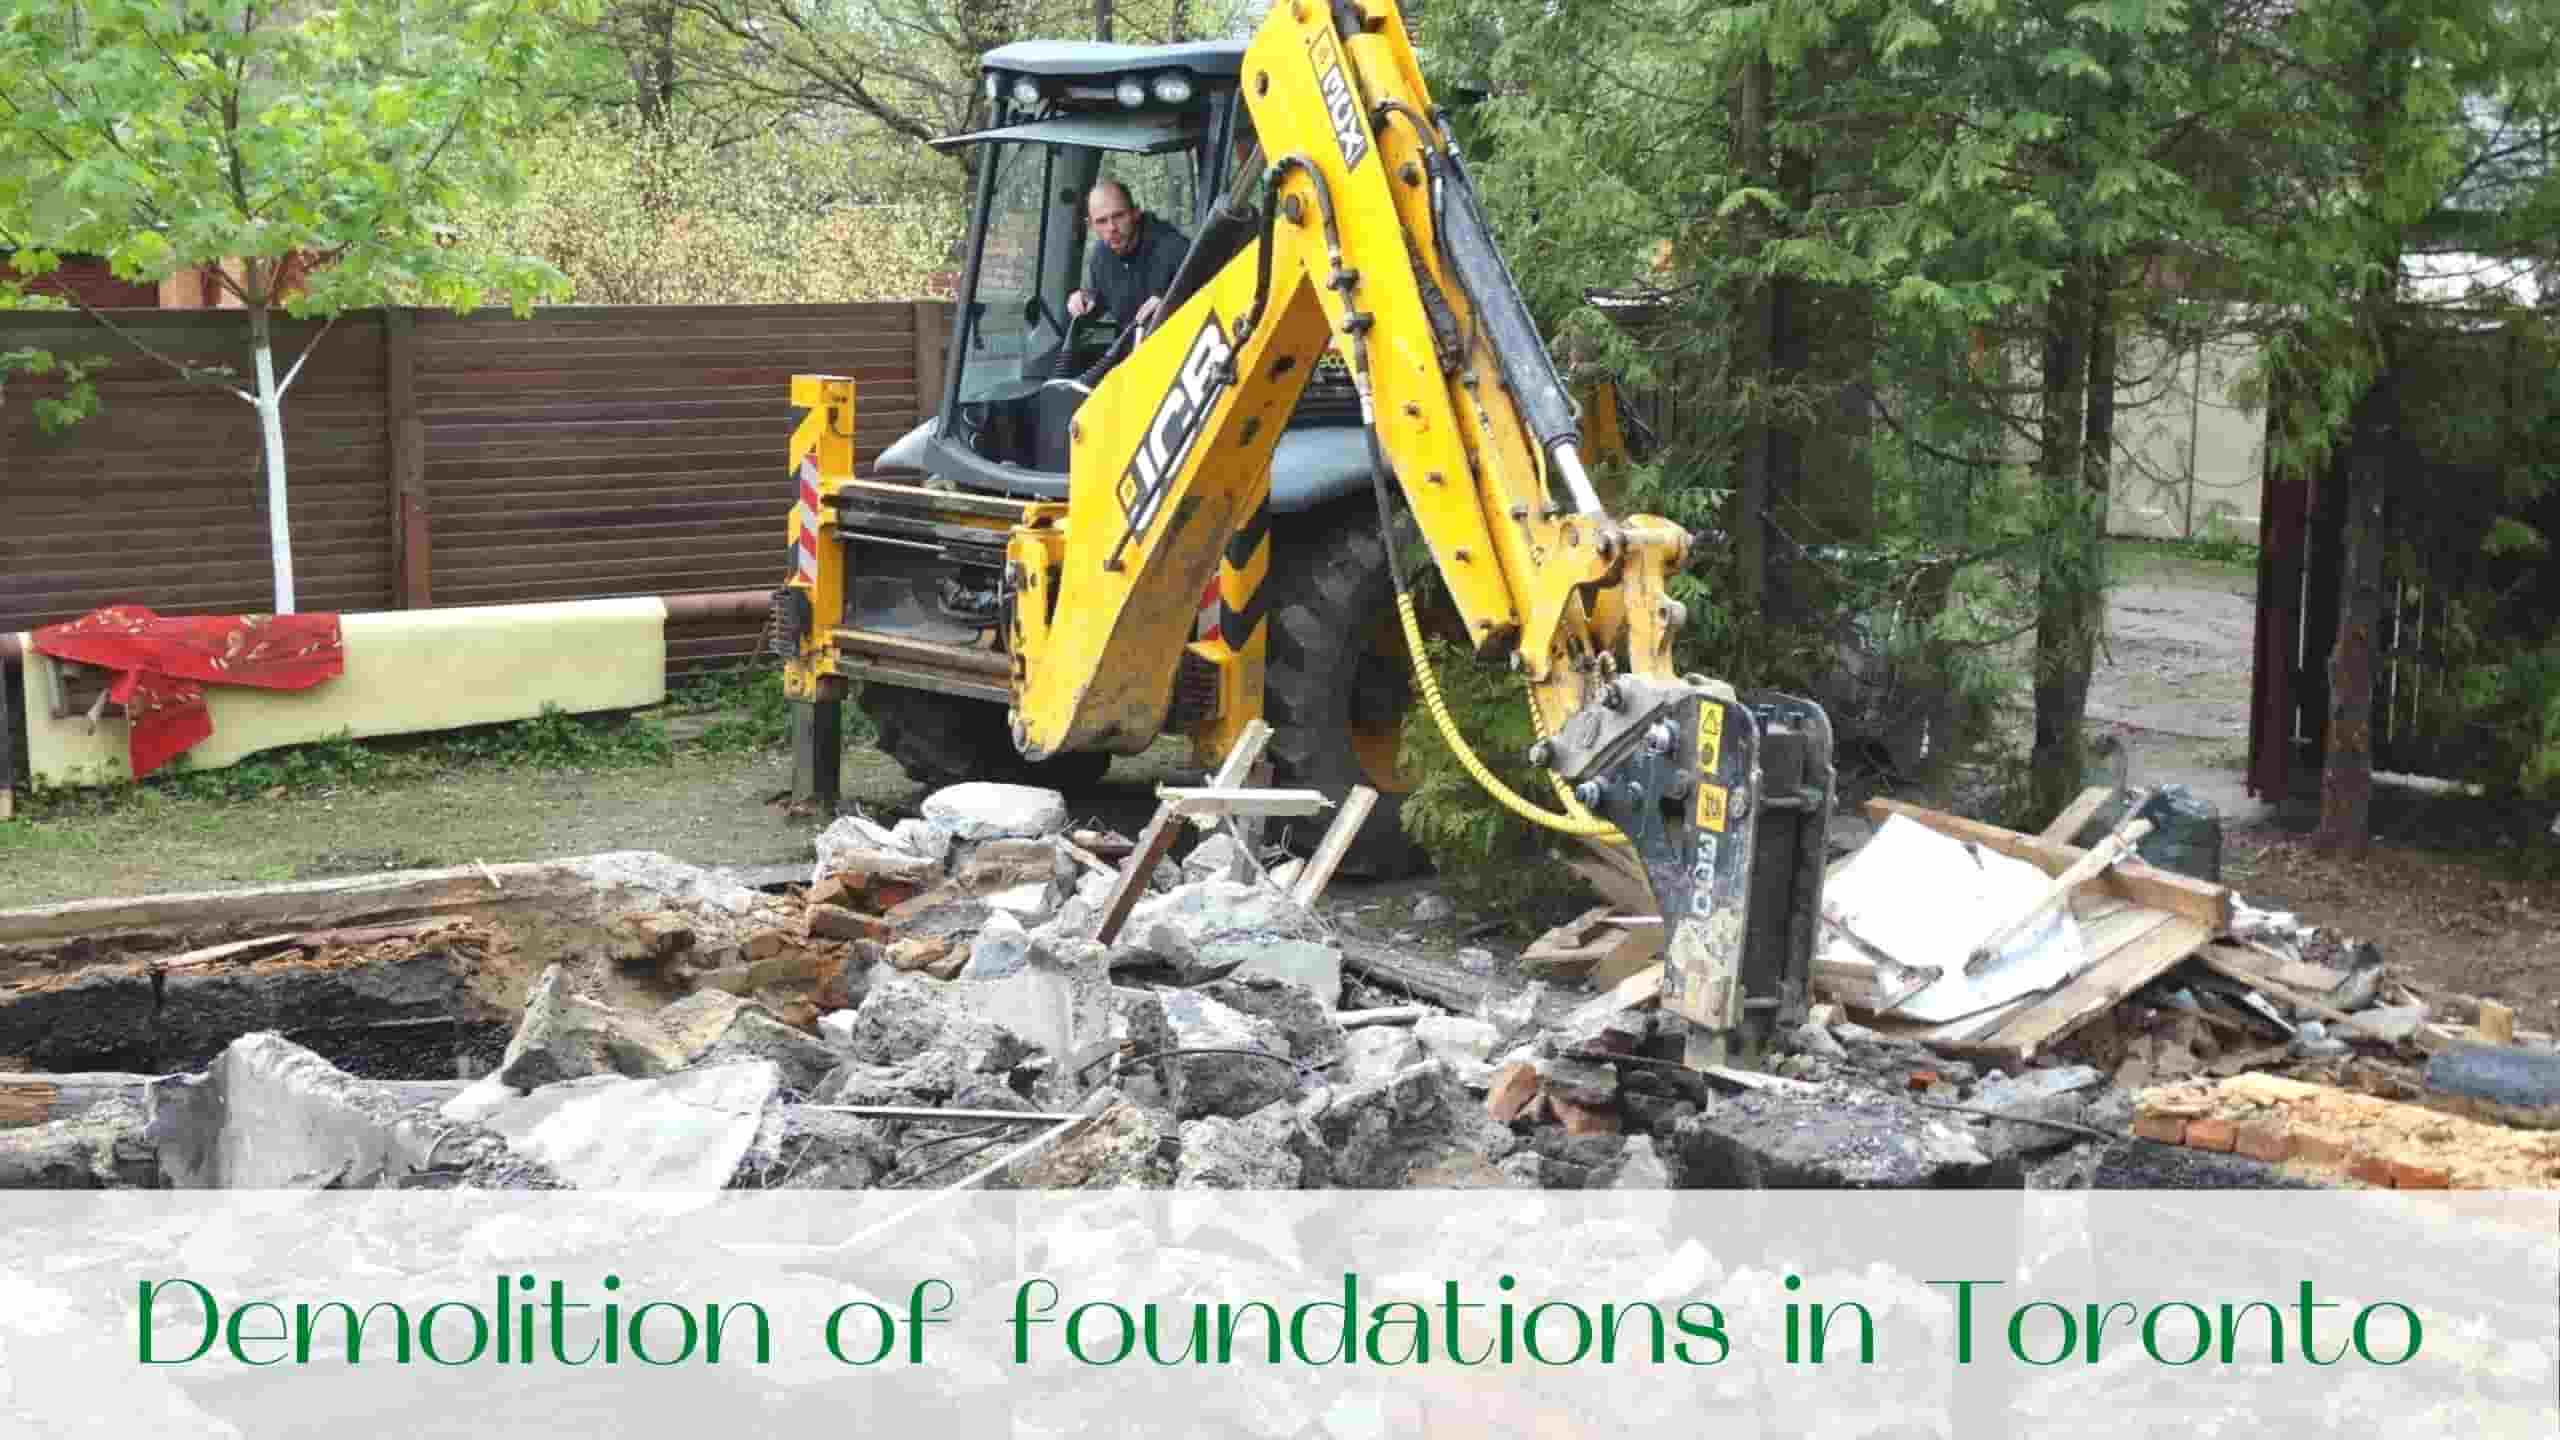 image-demolition-of-foundations-in-Toronto